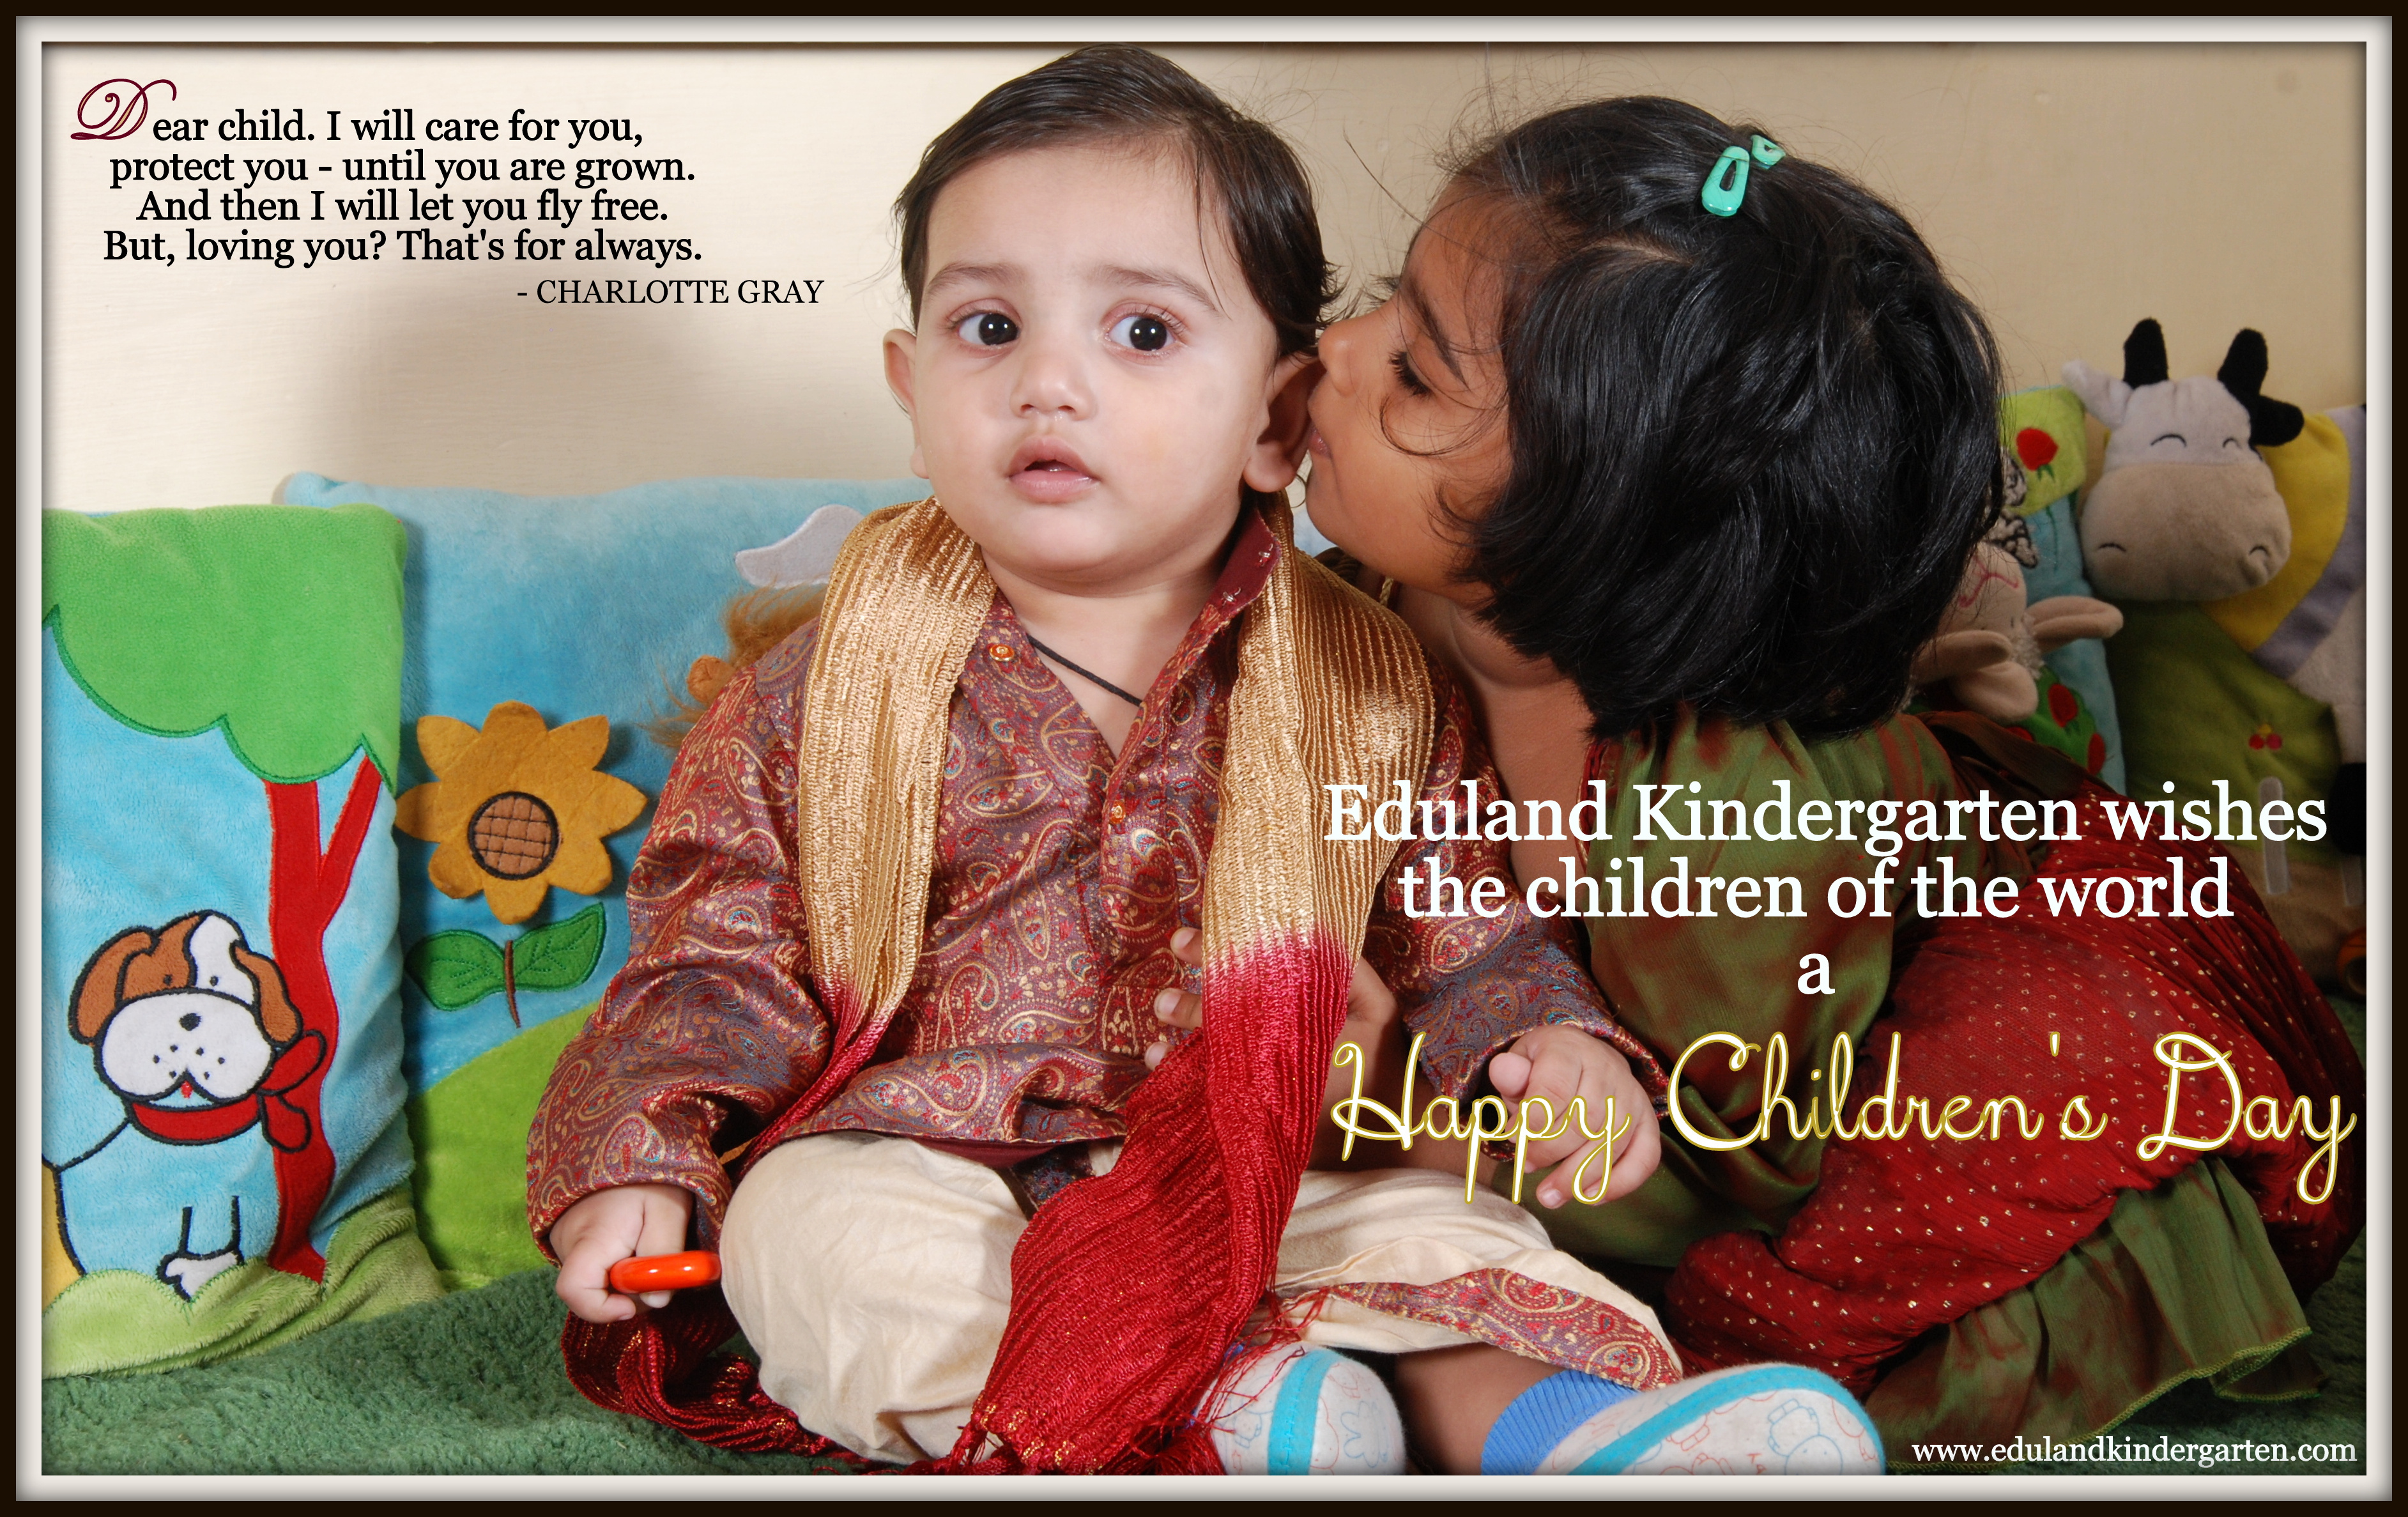 Childrens Day Greetings Eduland Kindergarten Chalkboard